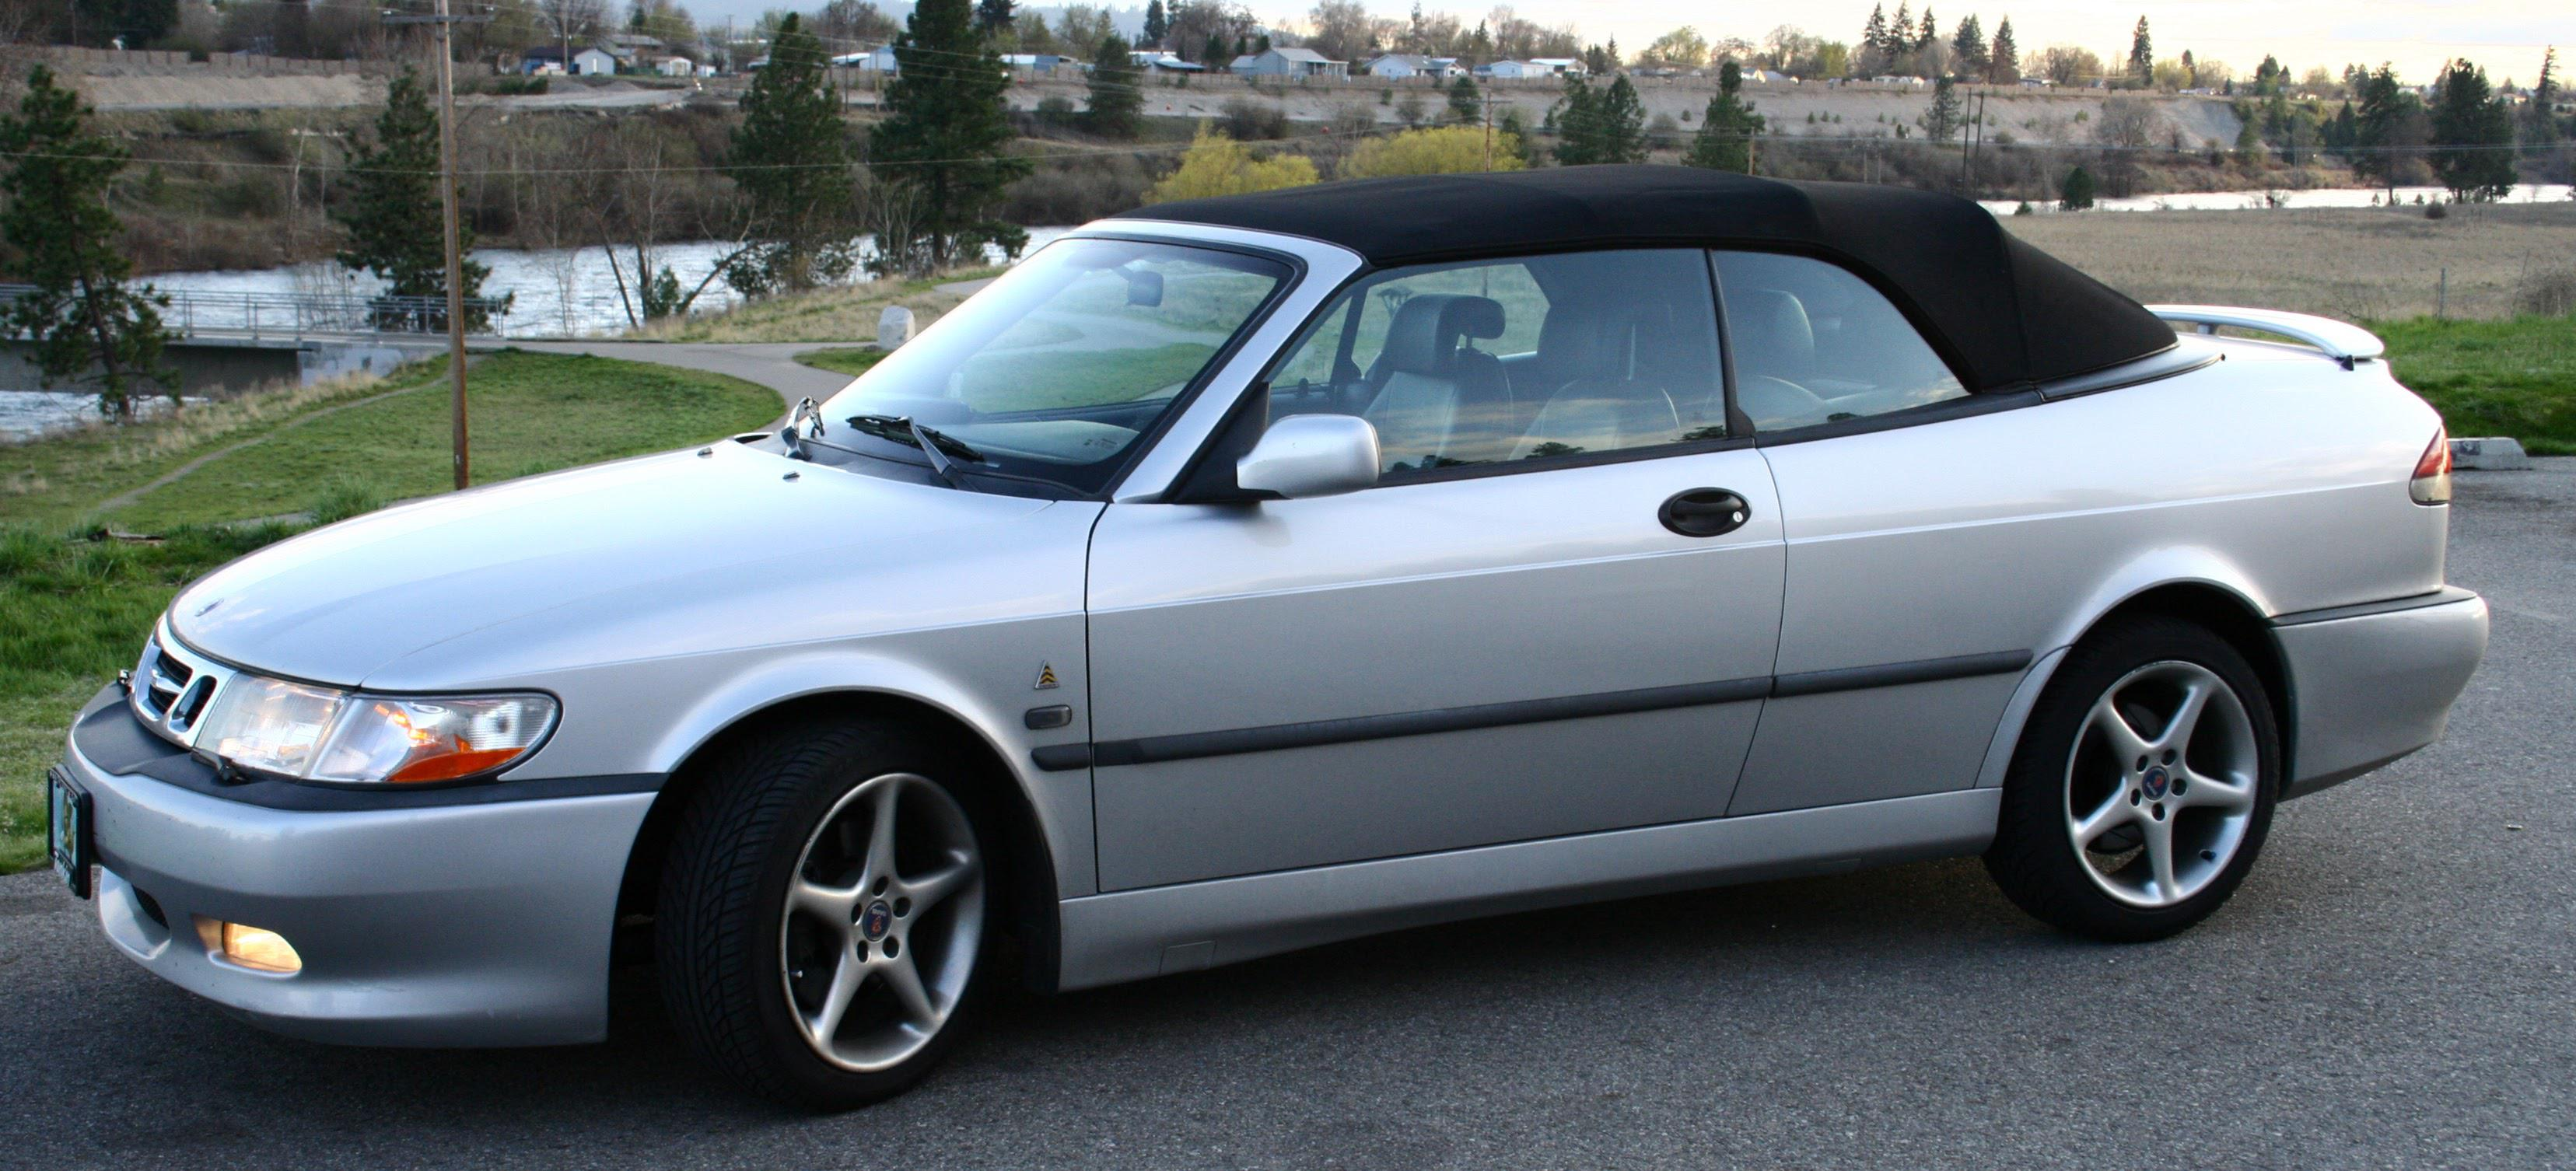 Missing my Viggen ?. Life and finances forced me to sell at the time but even years later I miss it like crazy. This sub reminded me how much I ...